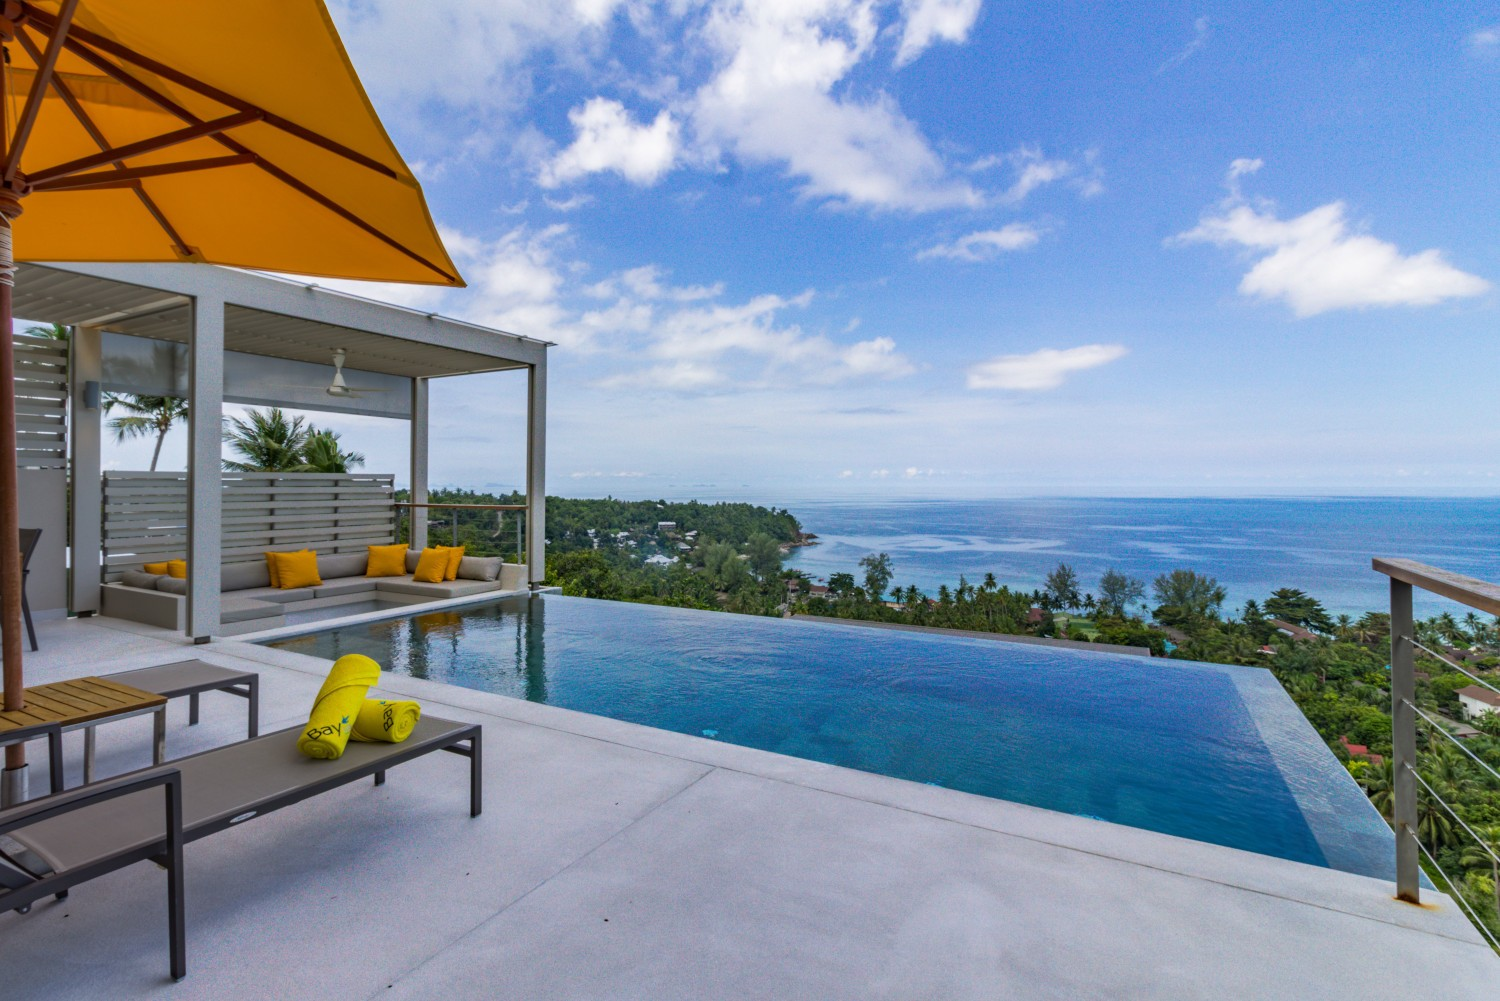 Pool villa overlooking the bay